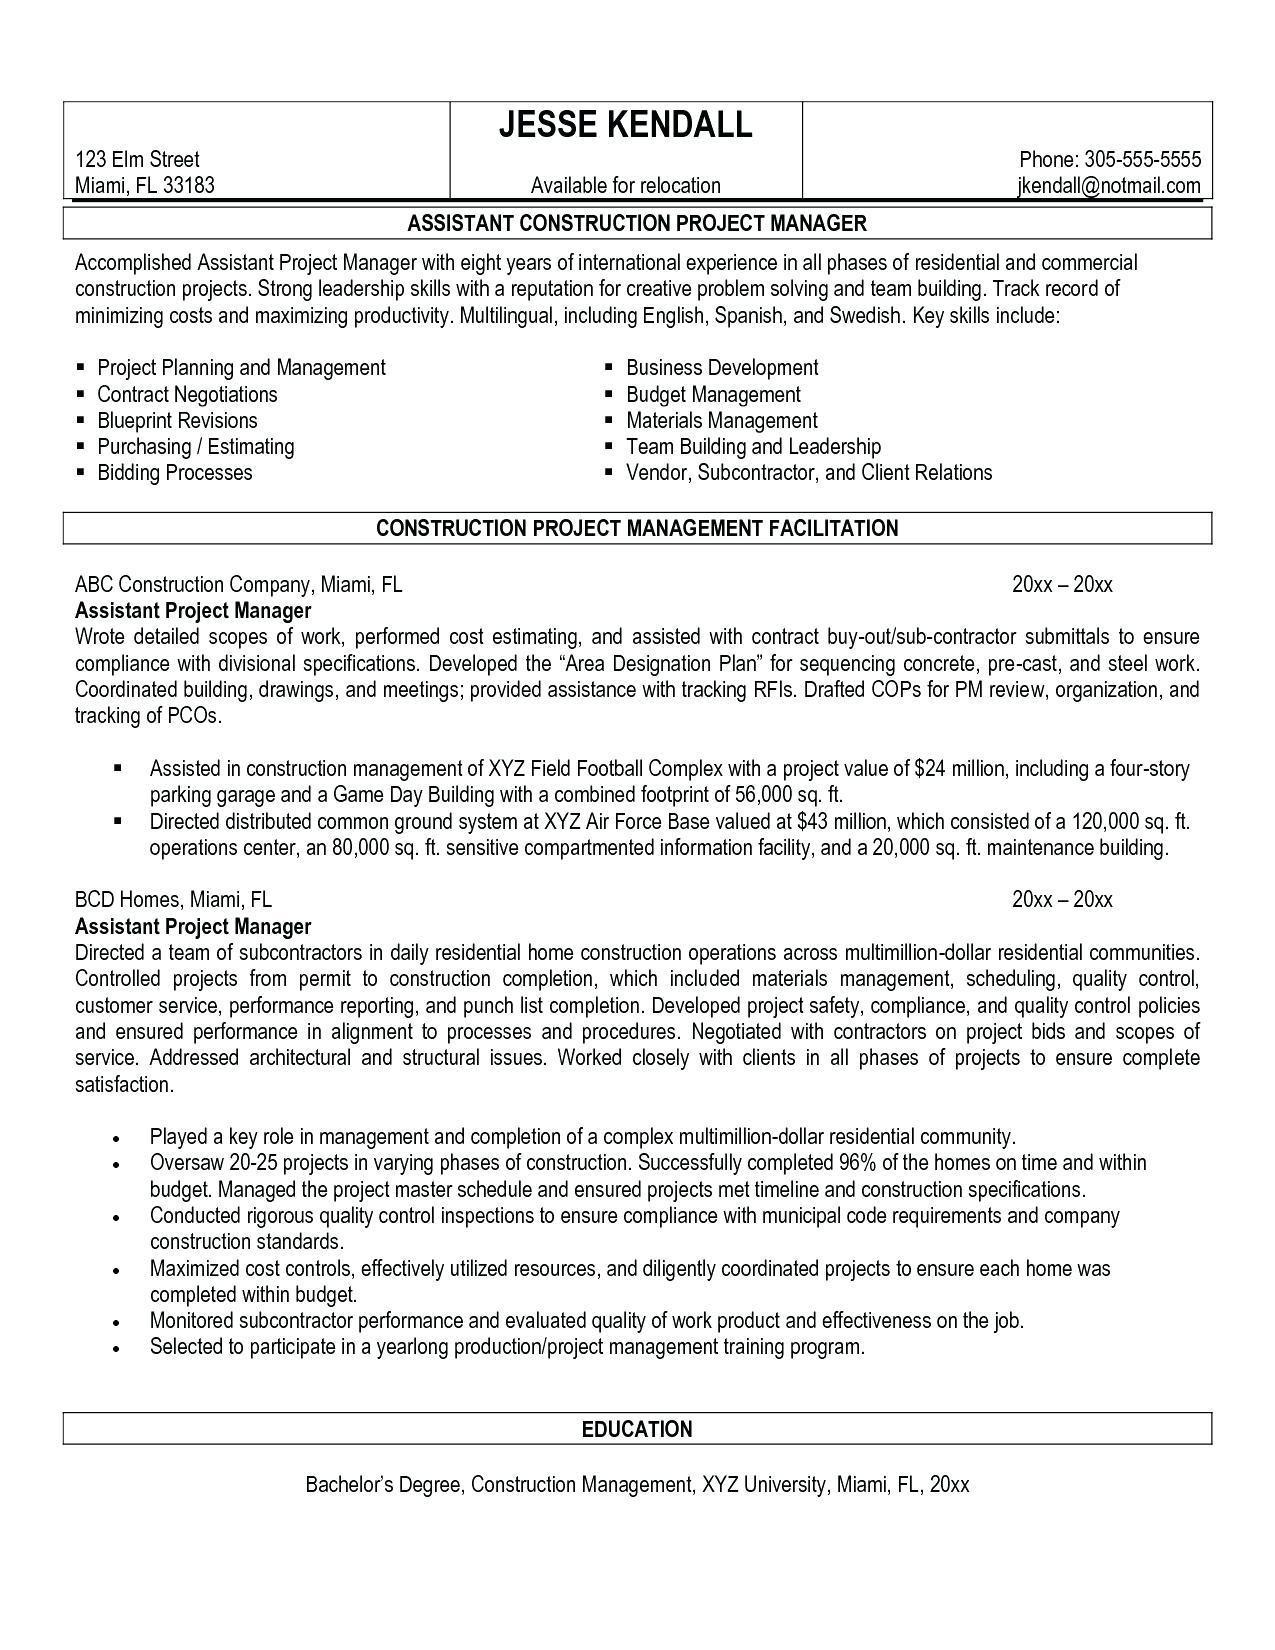 Contract Negotiation Sample Letter